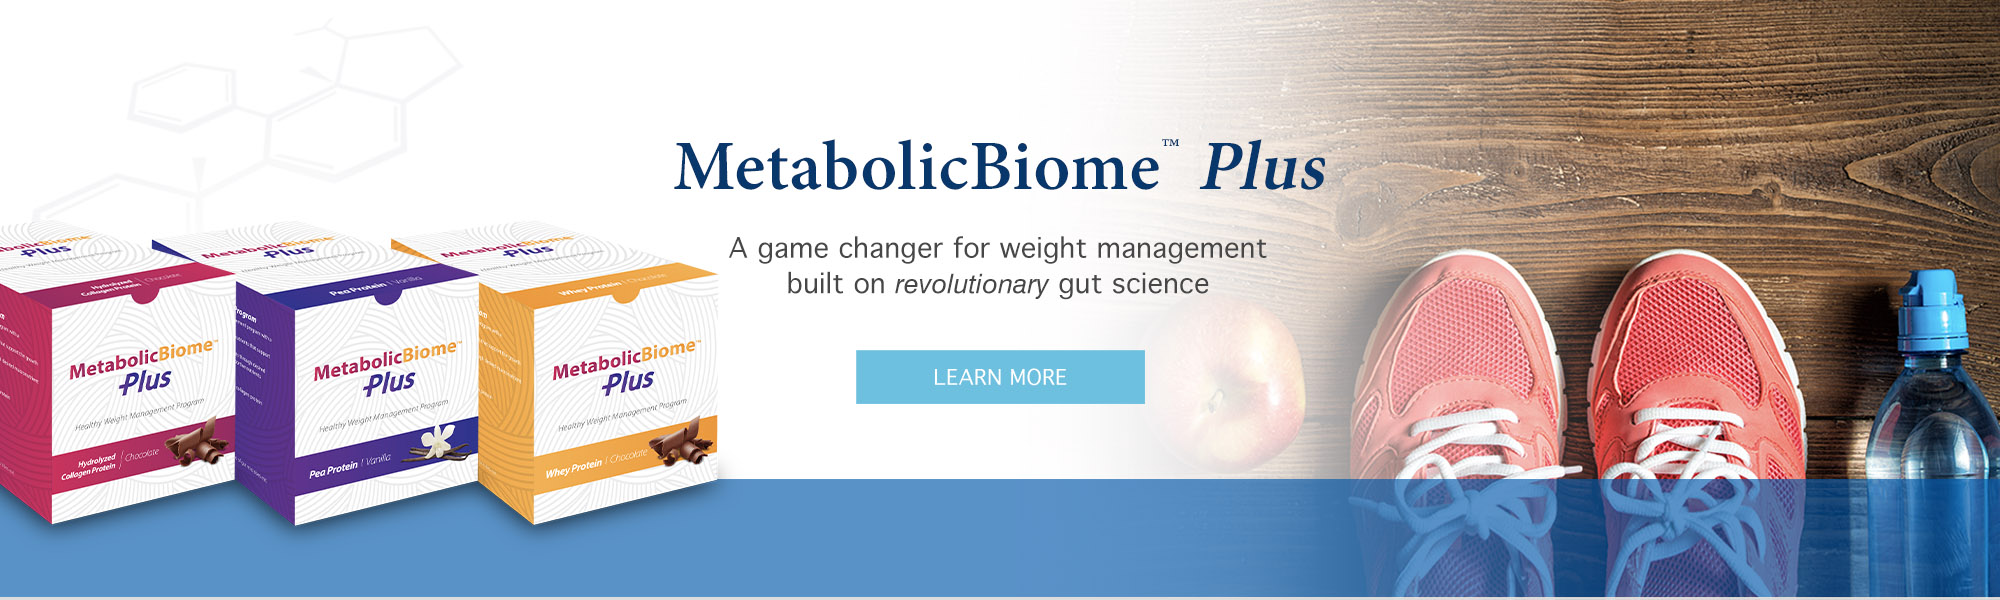 MetabolicBiomePlus_Banner1 copy